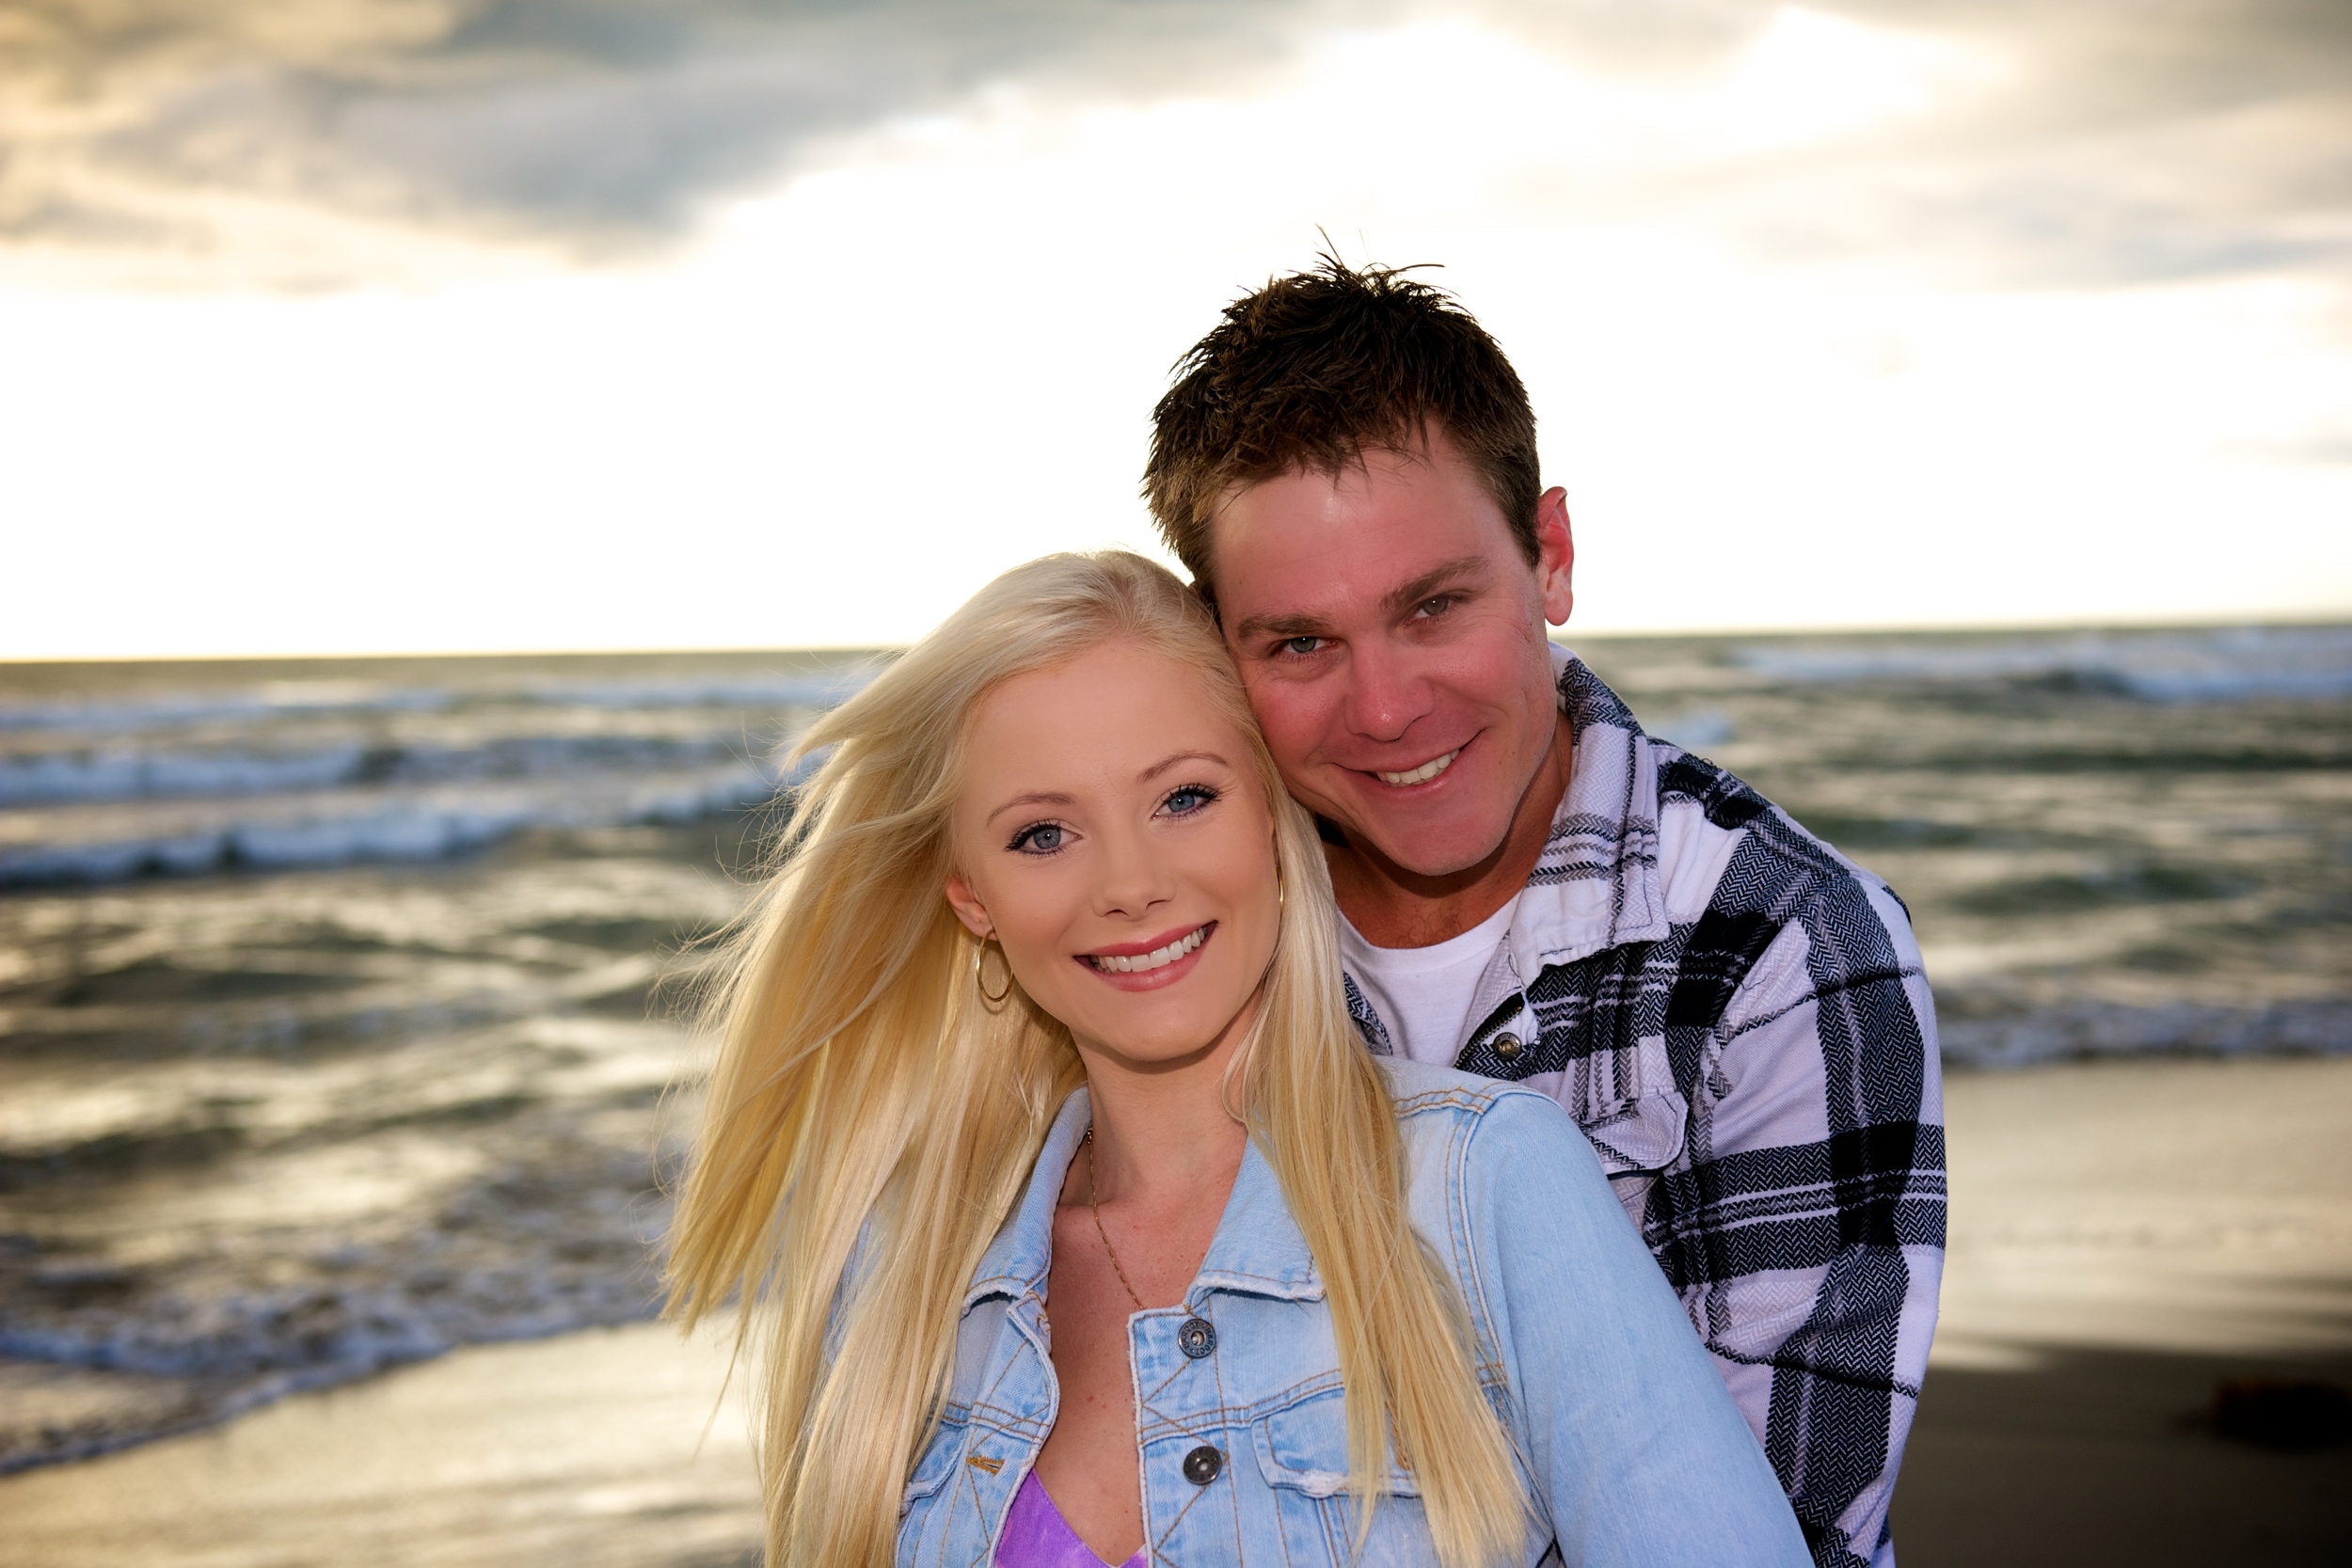 An amazing image at sunset on the beach of a loving engaged couple